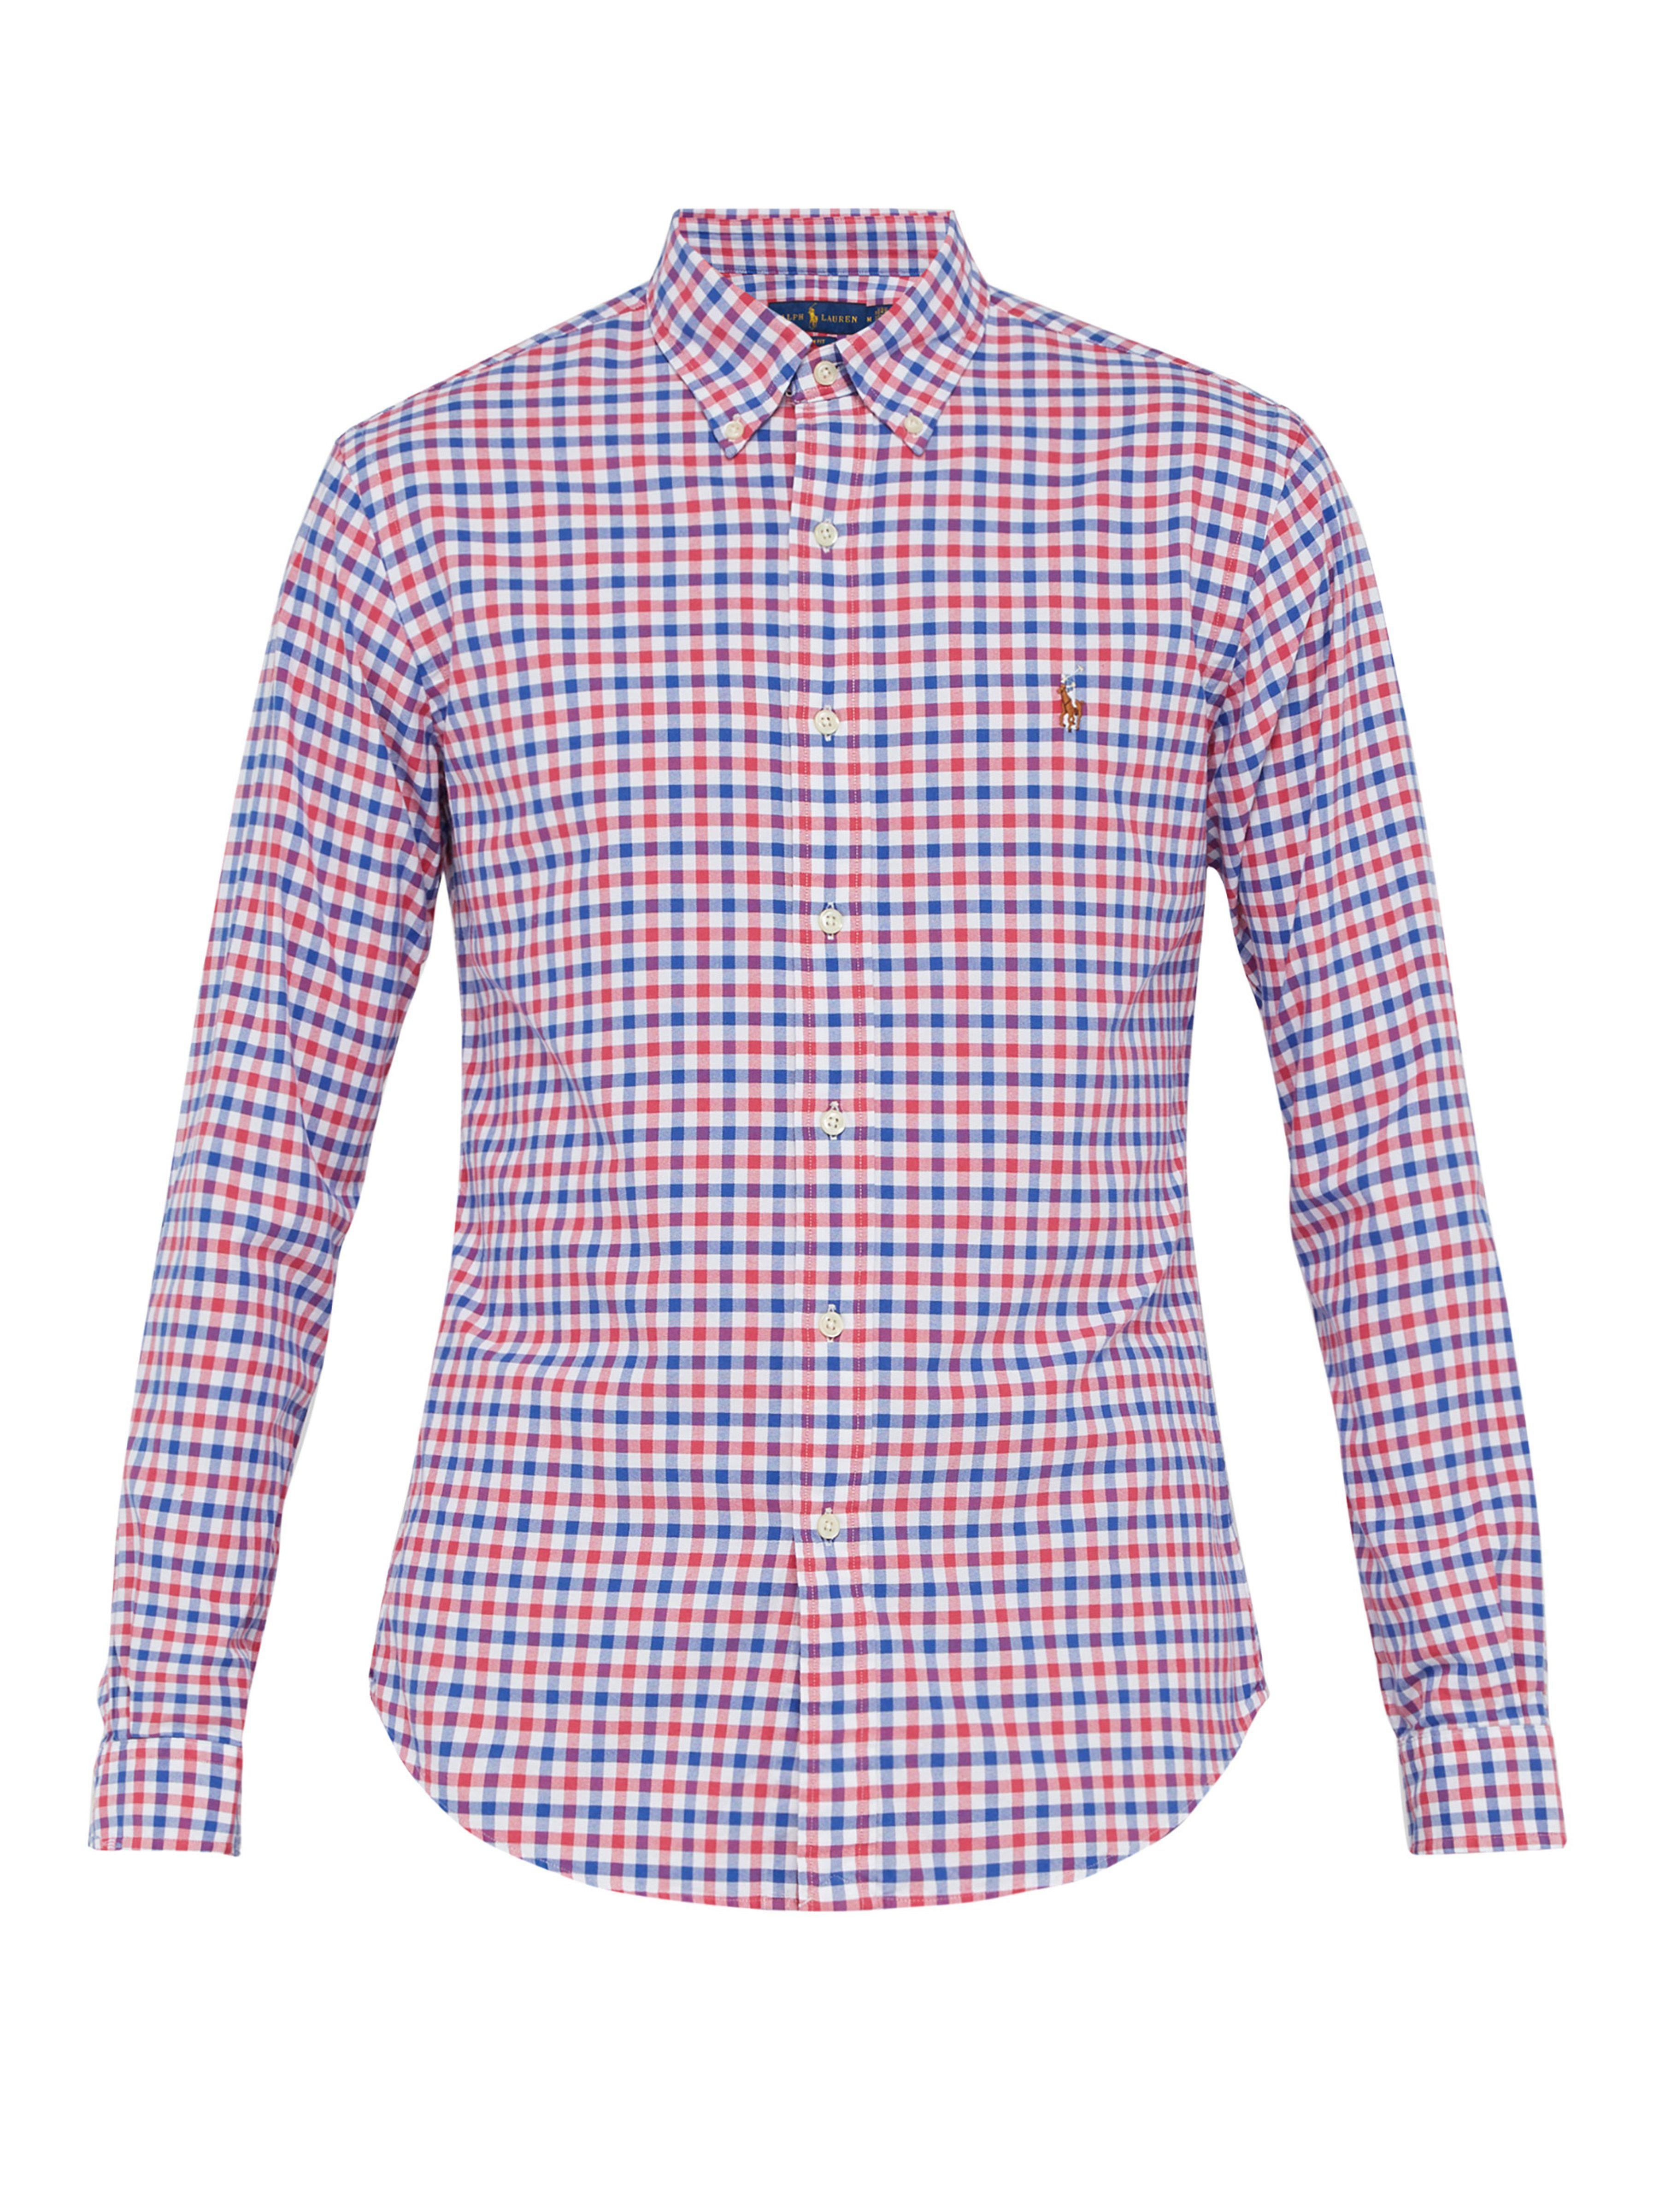 25934dedfd9 Polo Ralph Lauren Checked Cotton Shirt in Red for Men - Lyst